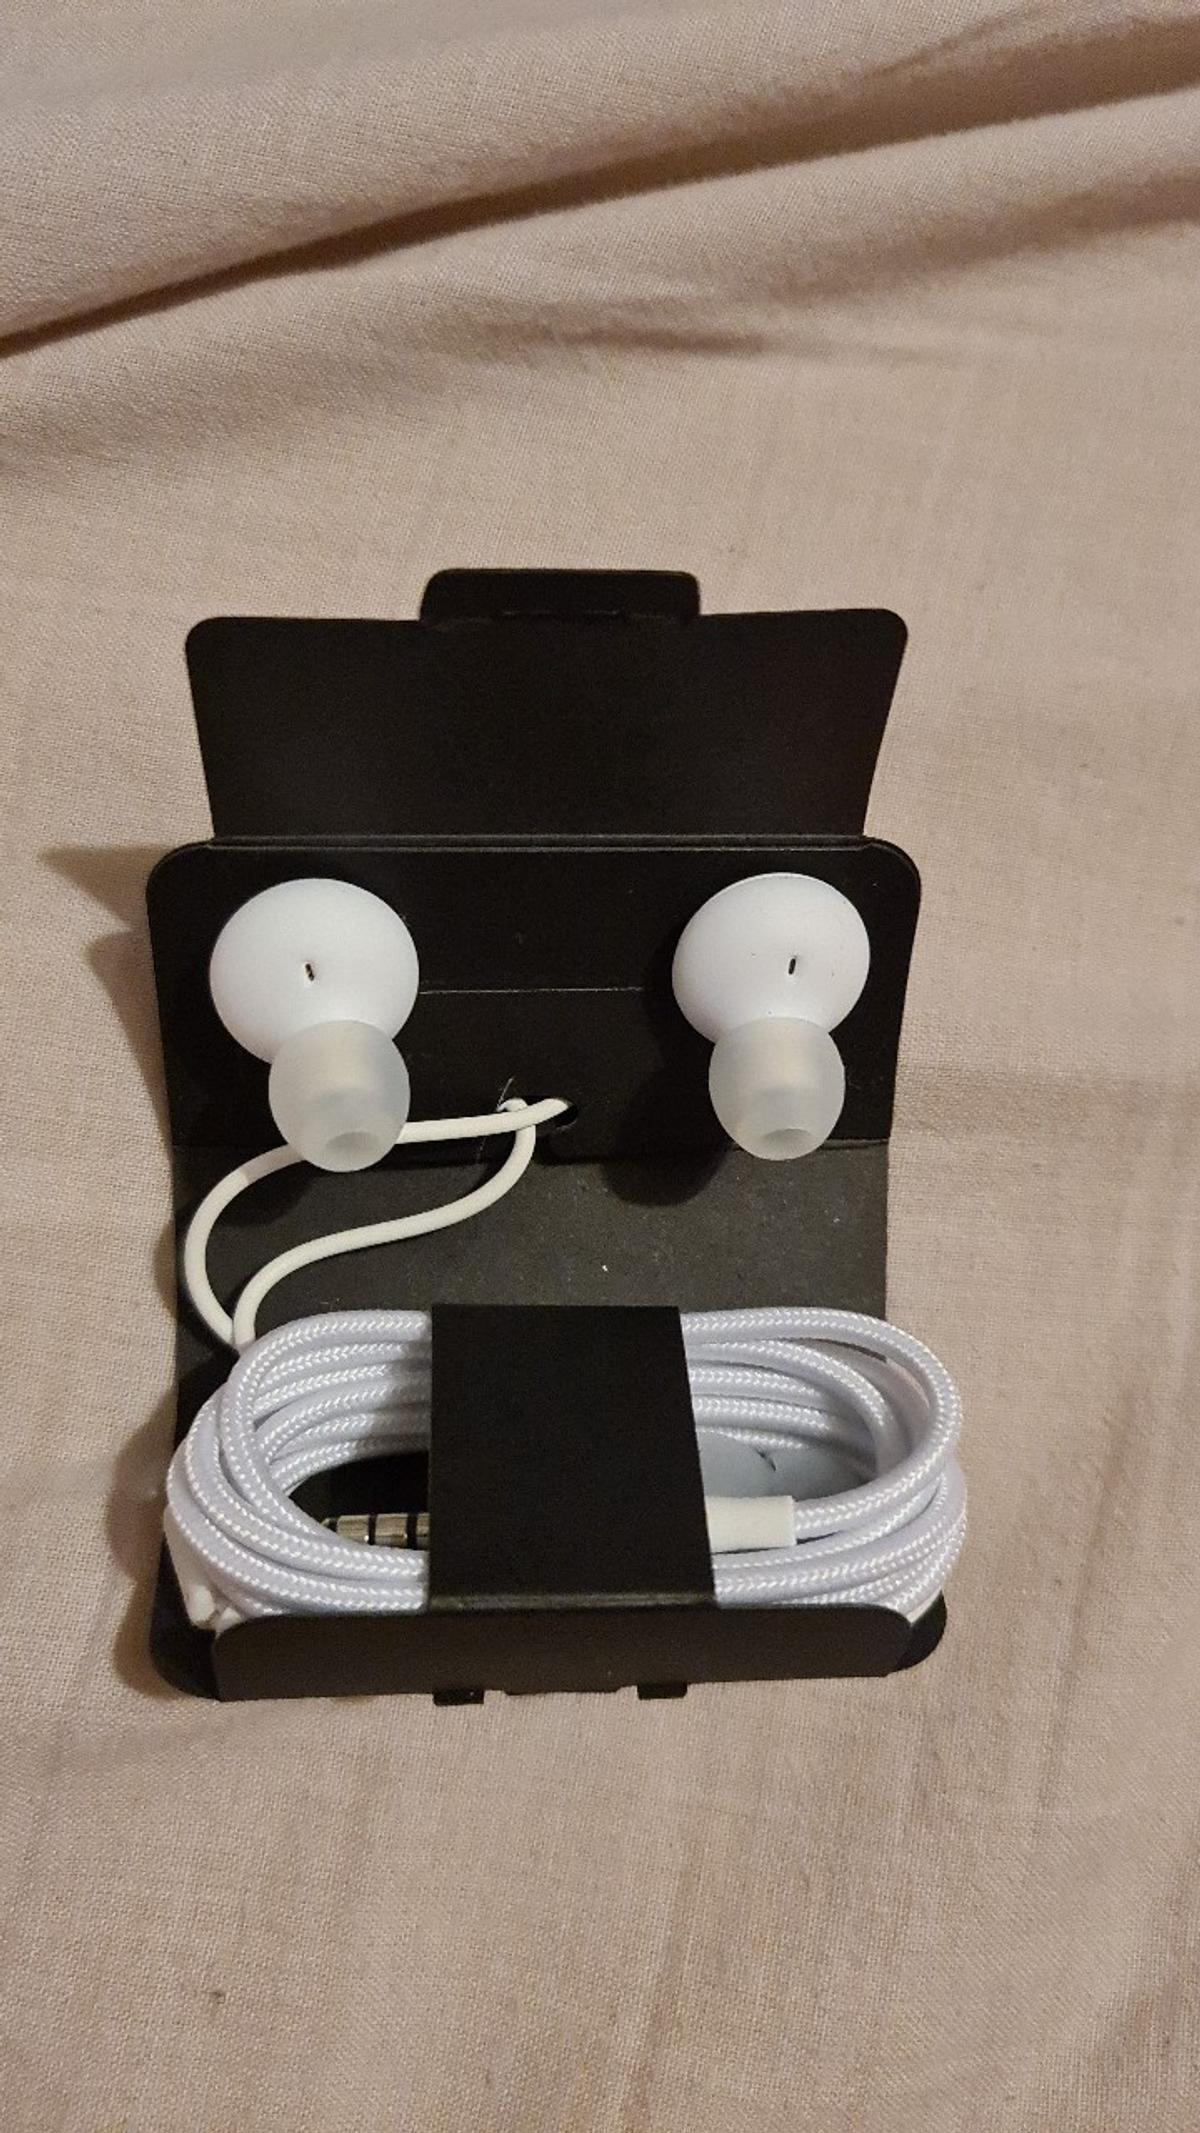 AKG in ear phones in white, brand new never been used. Still in the packet. collection only b65 Blackheath/Rowley Regis x